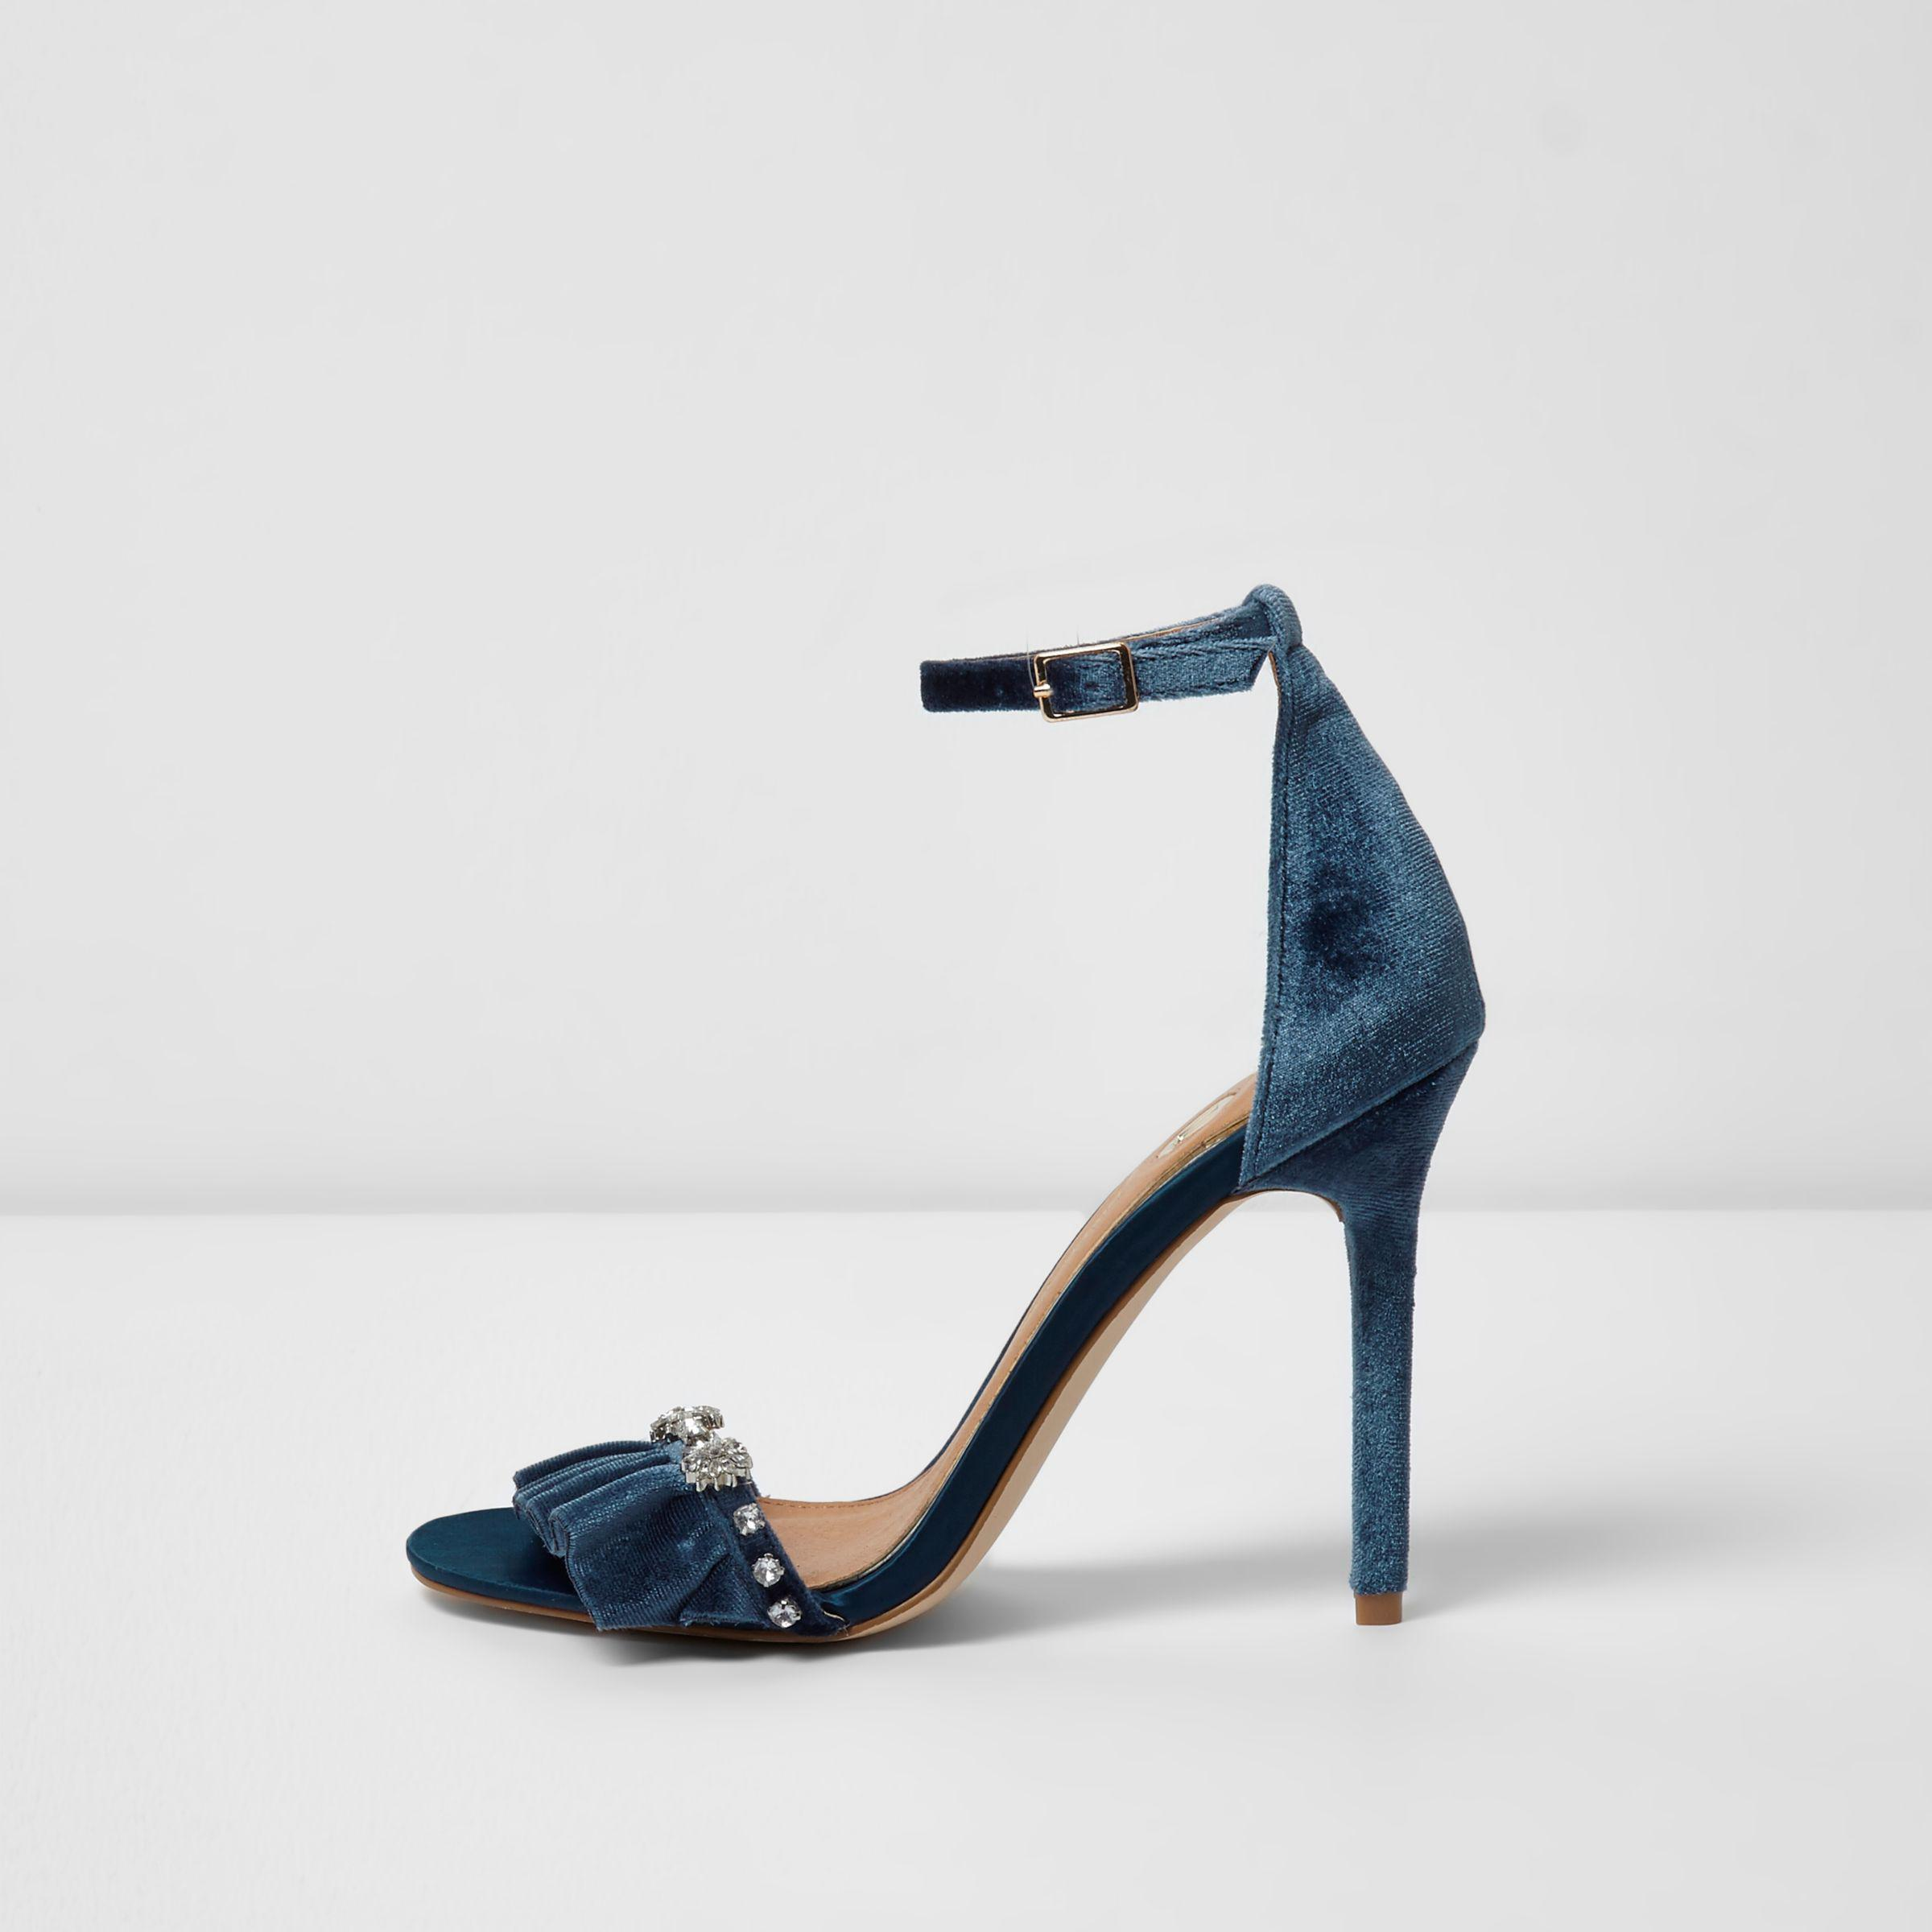 a1499dd00a38 Lyst - River Island Blue Velvet Embellished Barely There Sandals in Blue